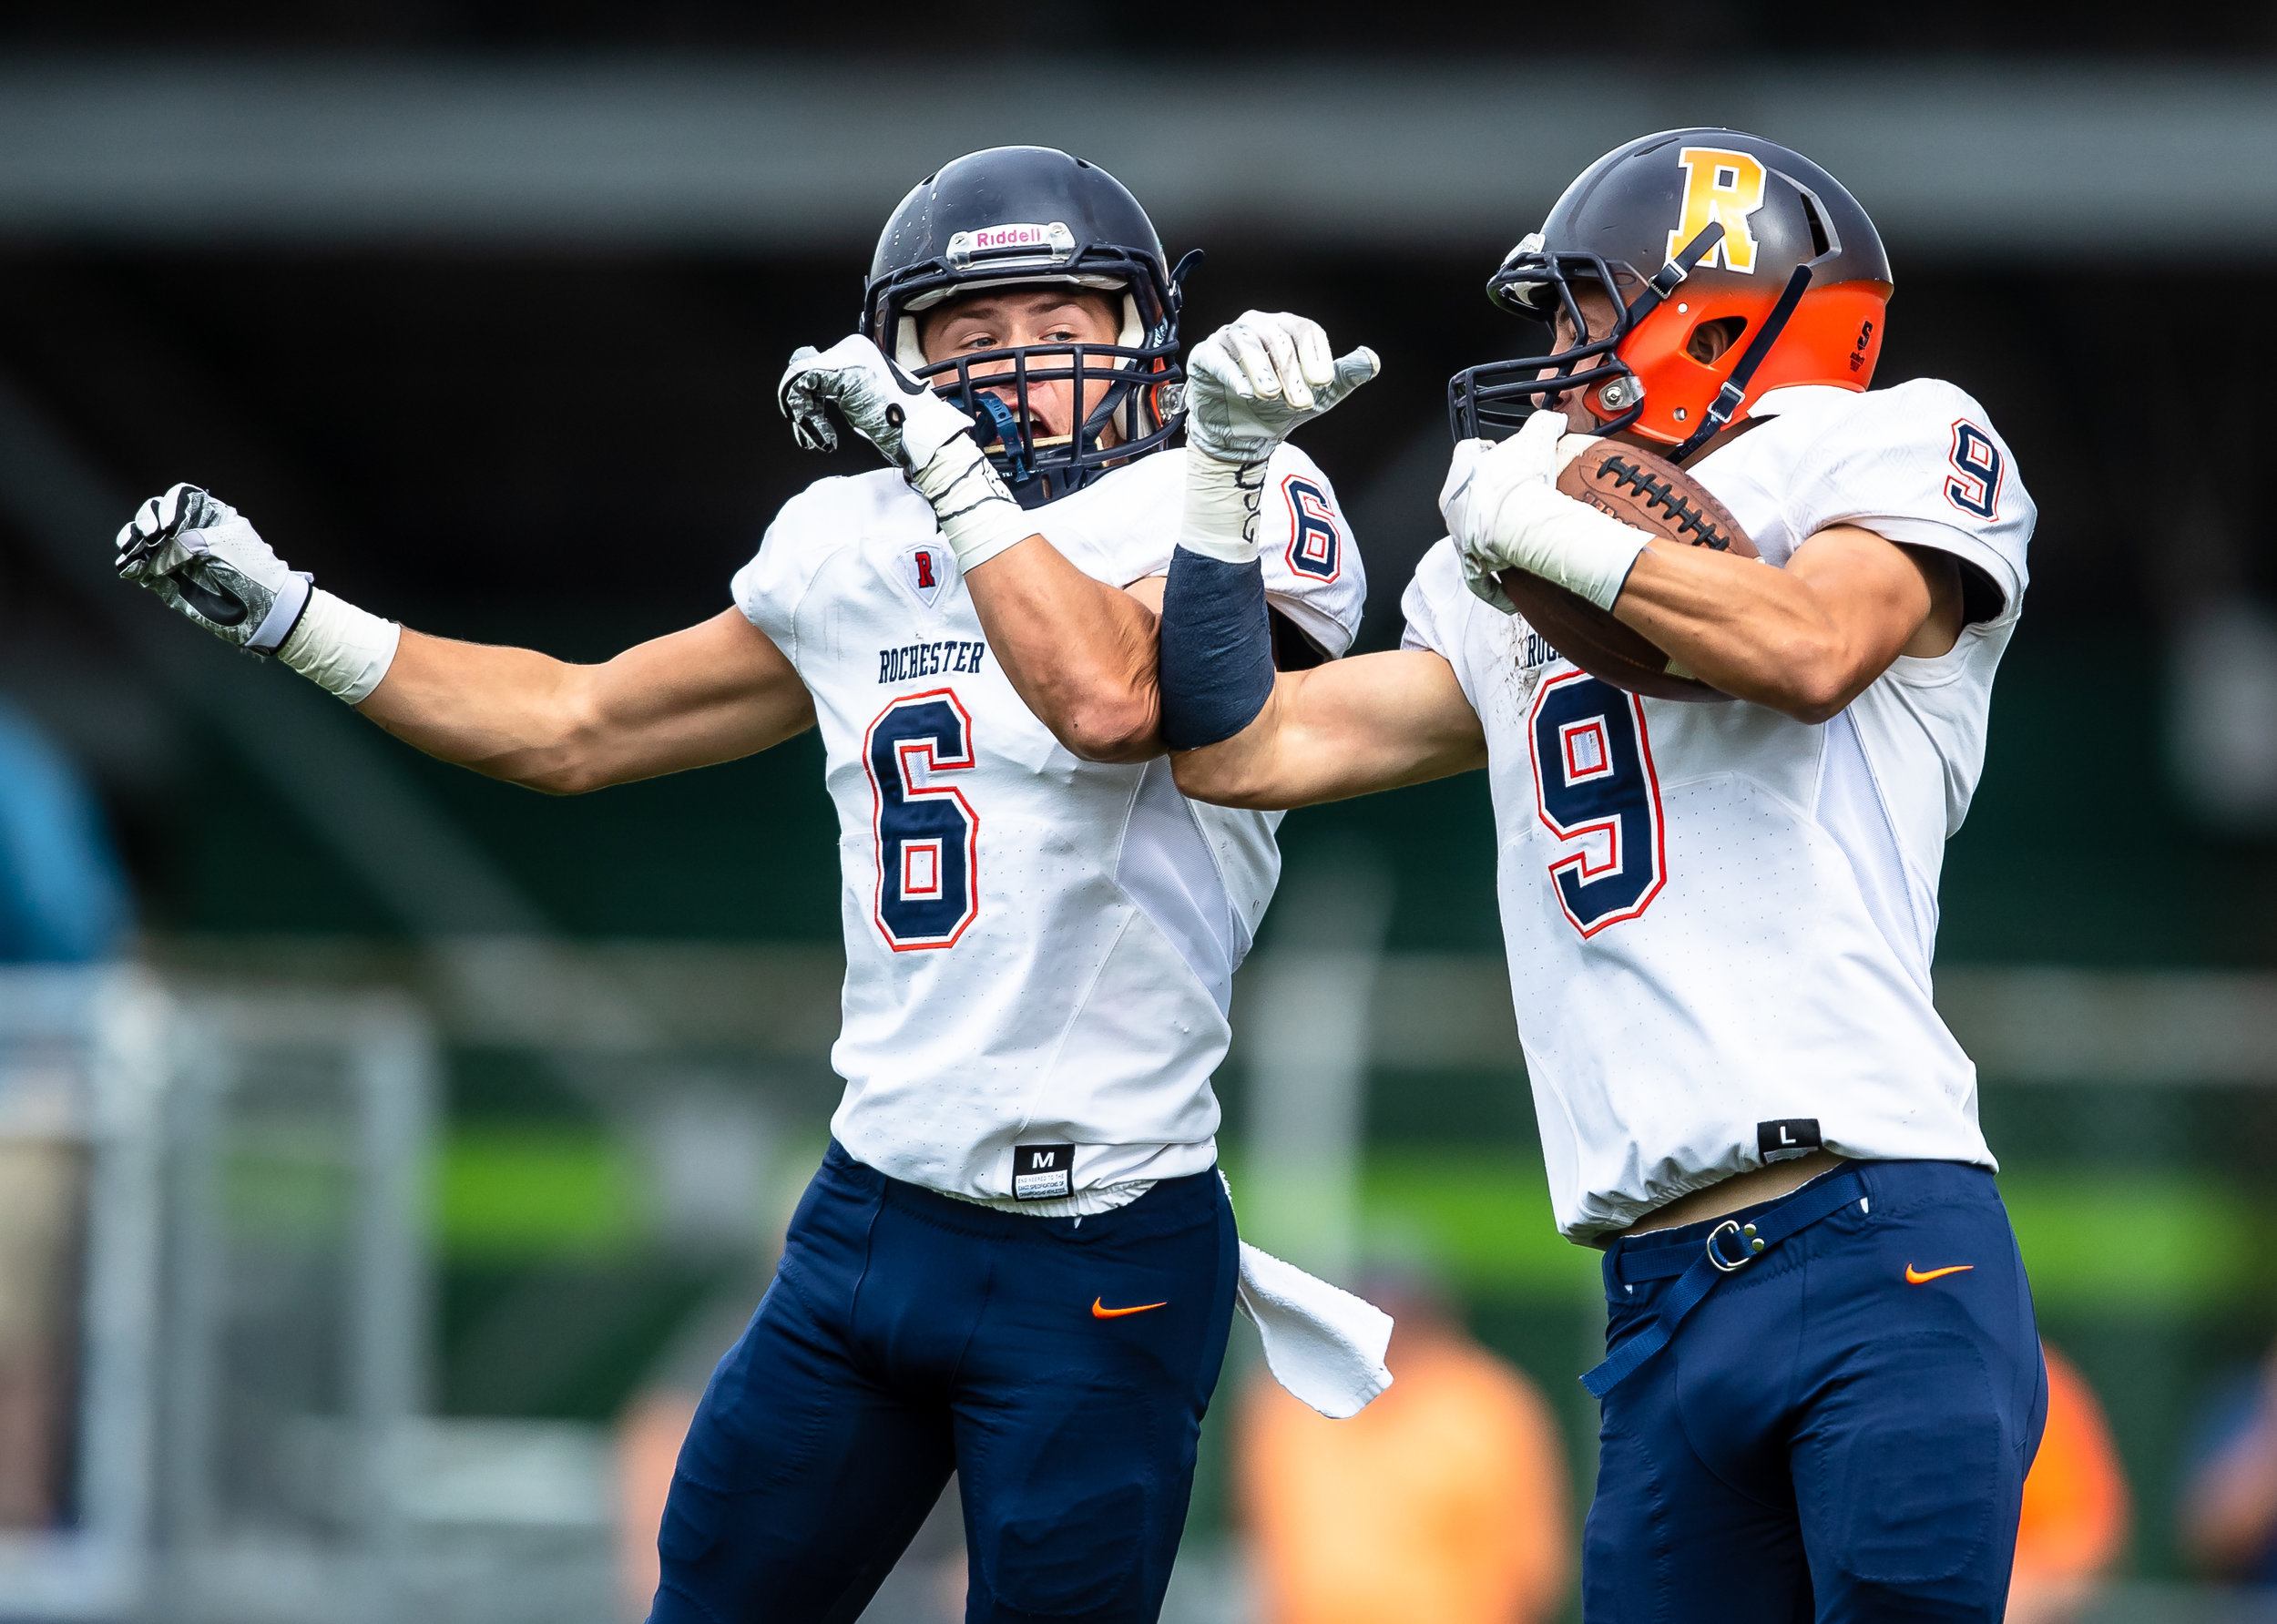 Rochester's Clayton Cornett (9) leaps up to celebrate his touchdown with Rochester's Cade Eddington (6) against Springfield in the first half at Memorial Stadium, Saturday, Oct. 6, 2018, in Springfield, Ill. [Justin L. Fowler/The State Journal-Register]